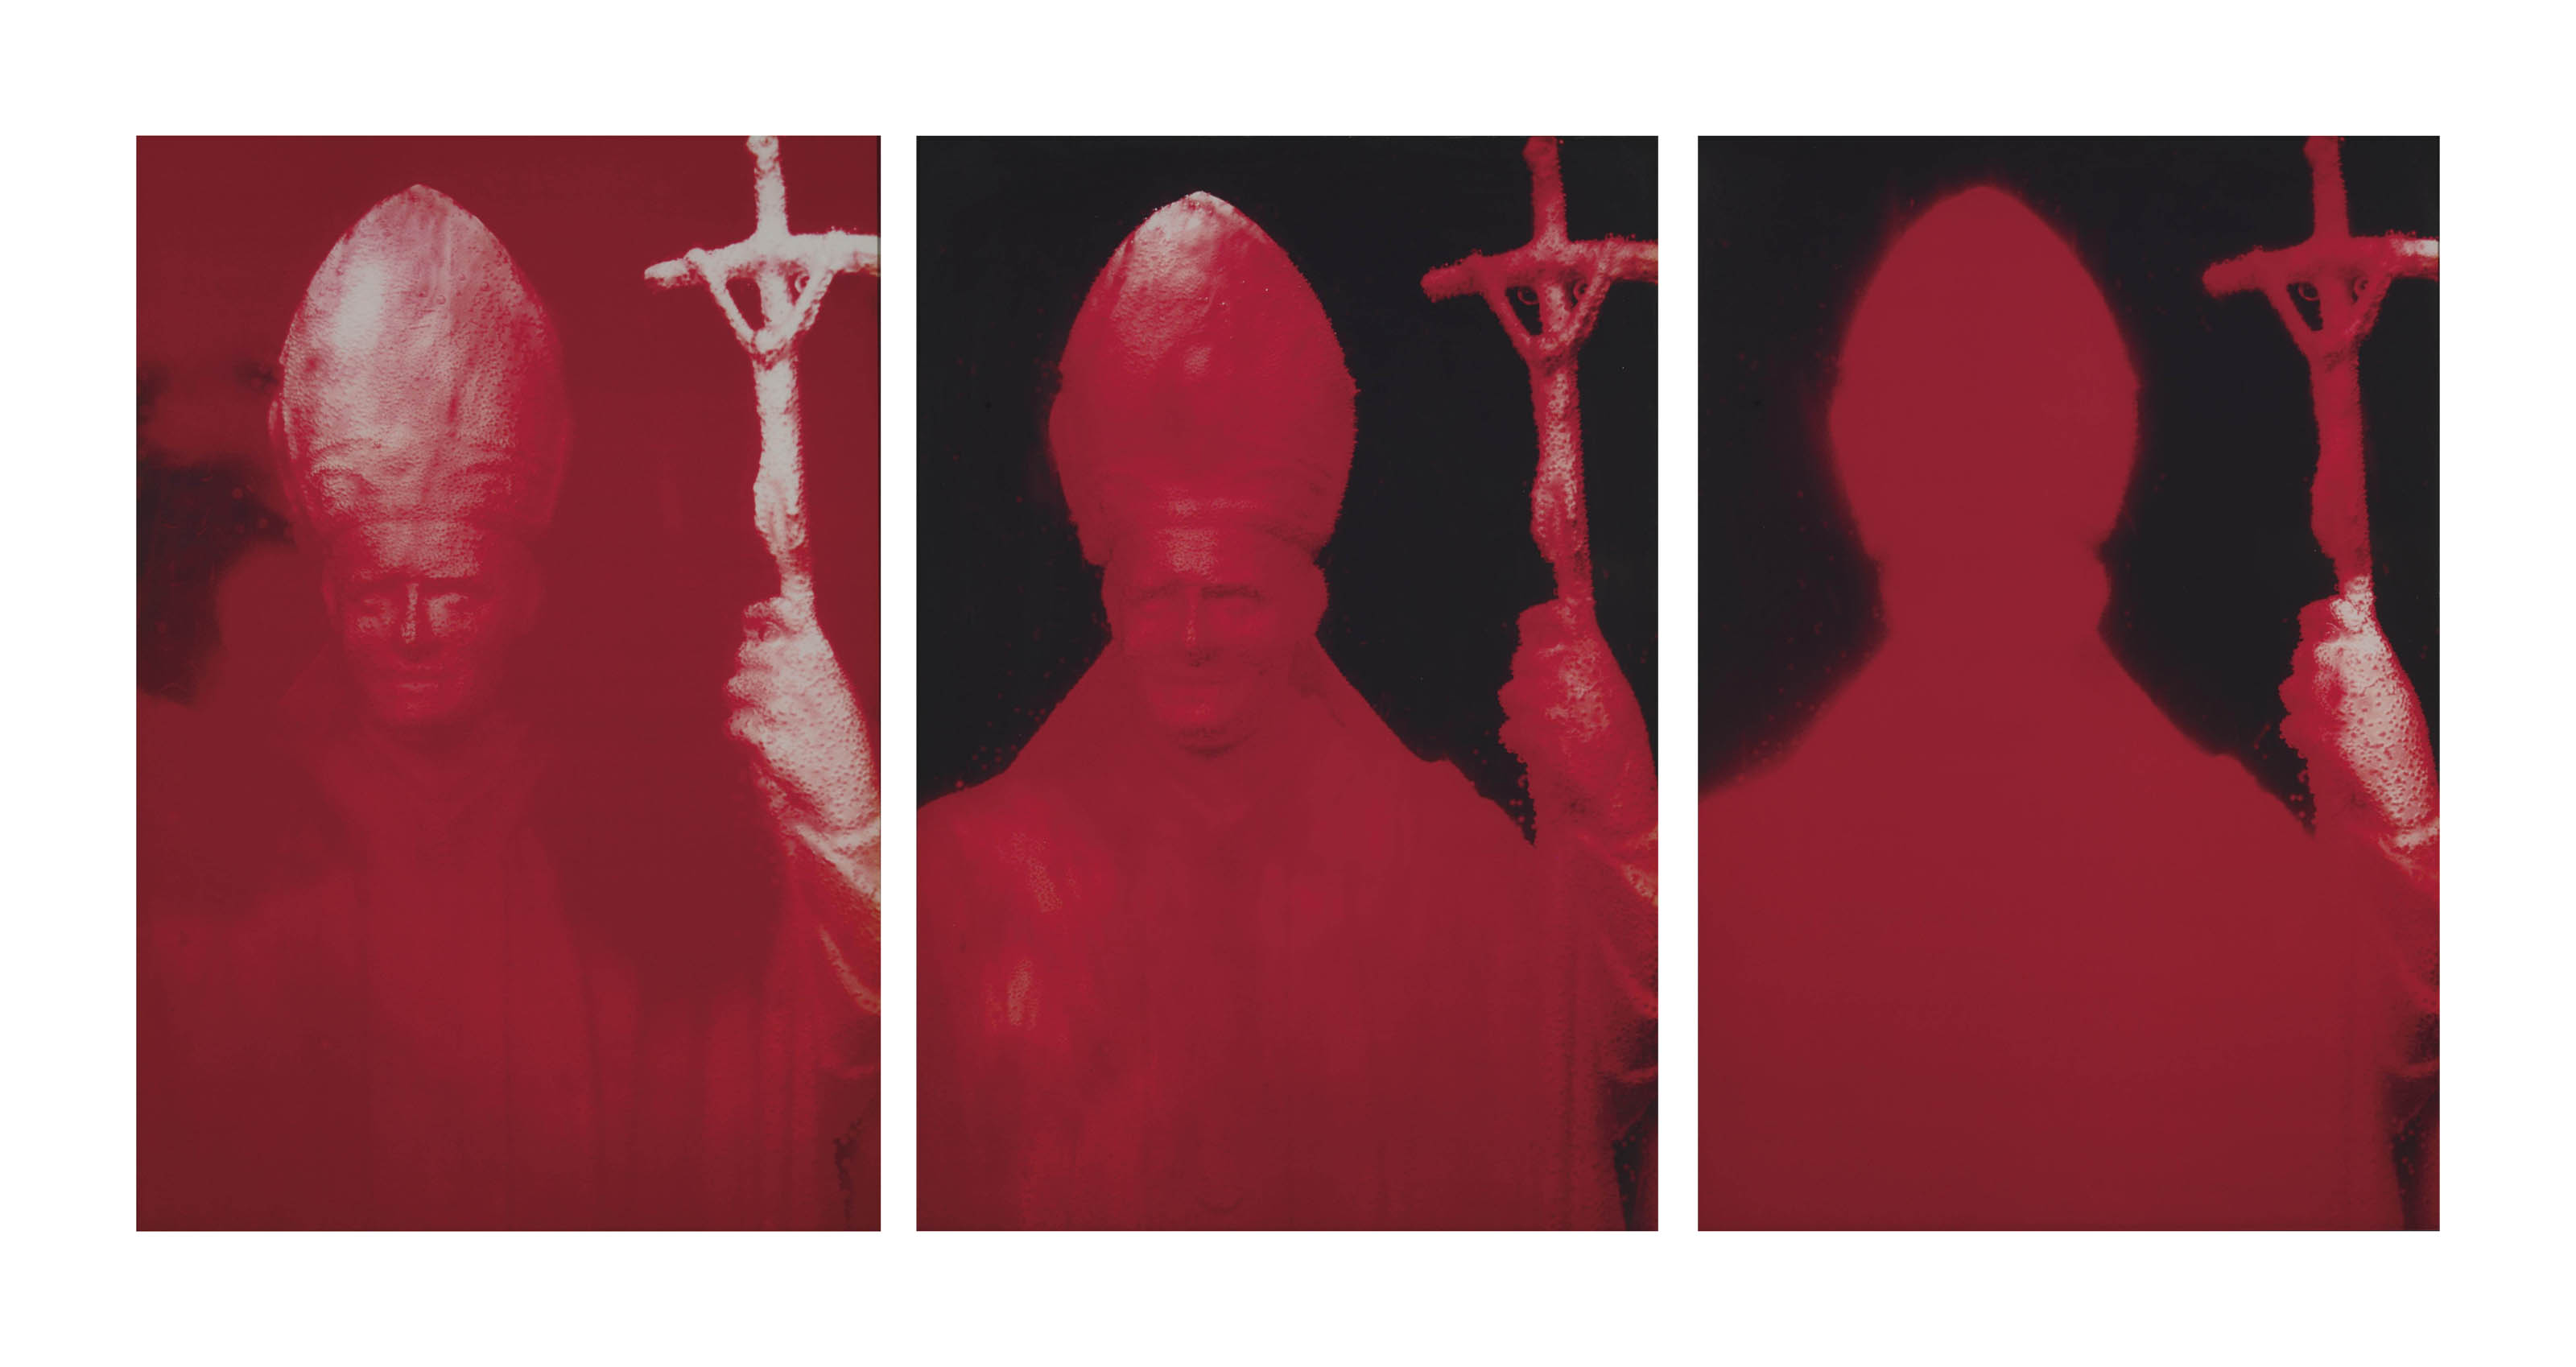 Red Pope (Part I, Part II, Part III)